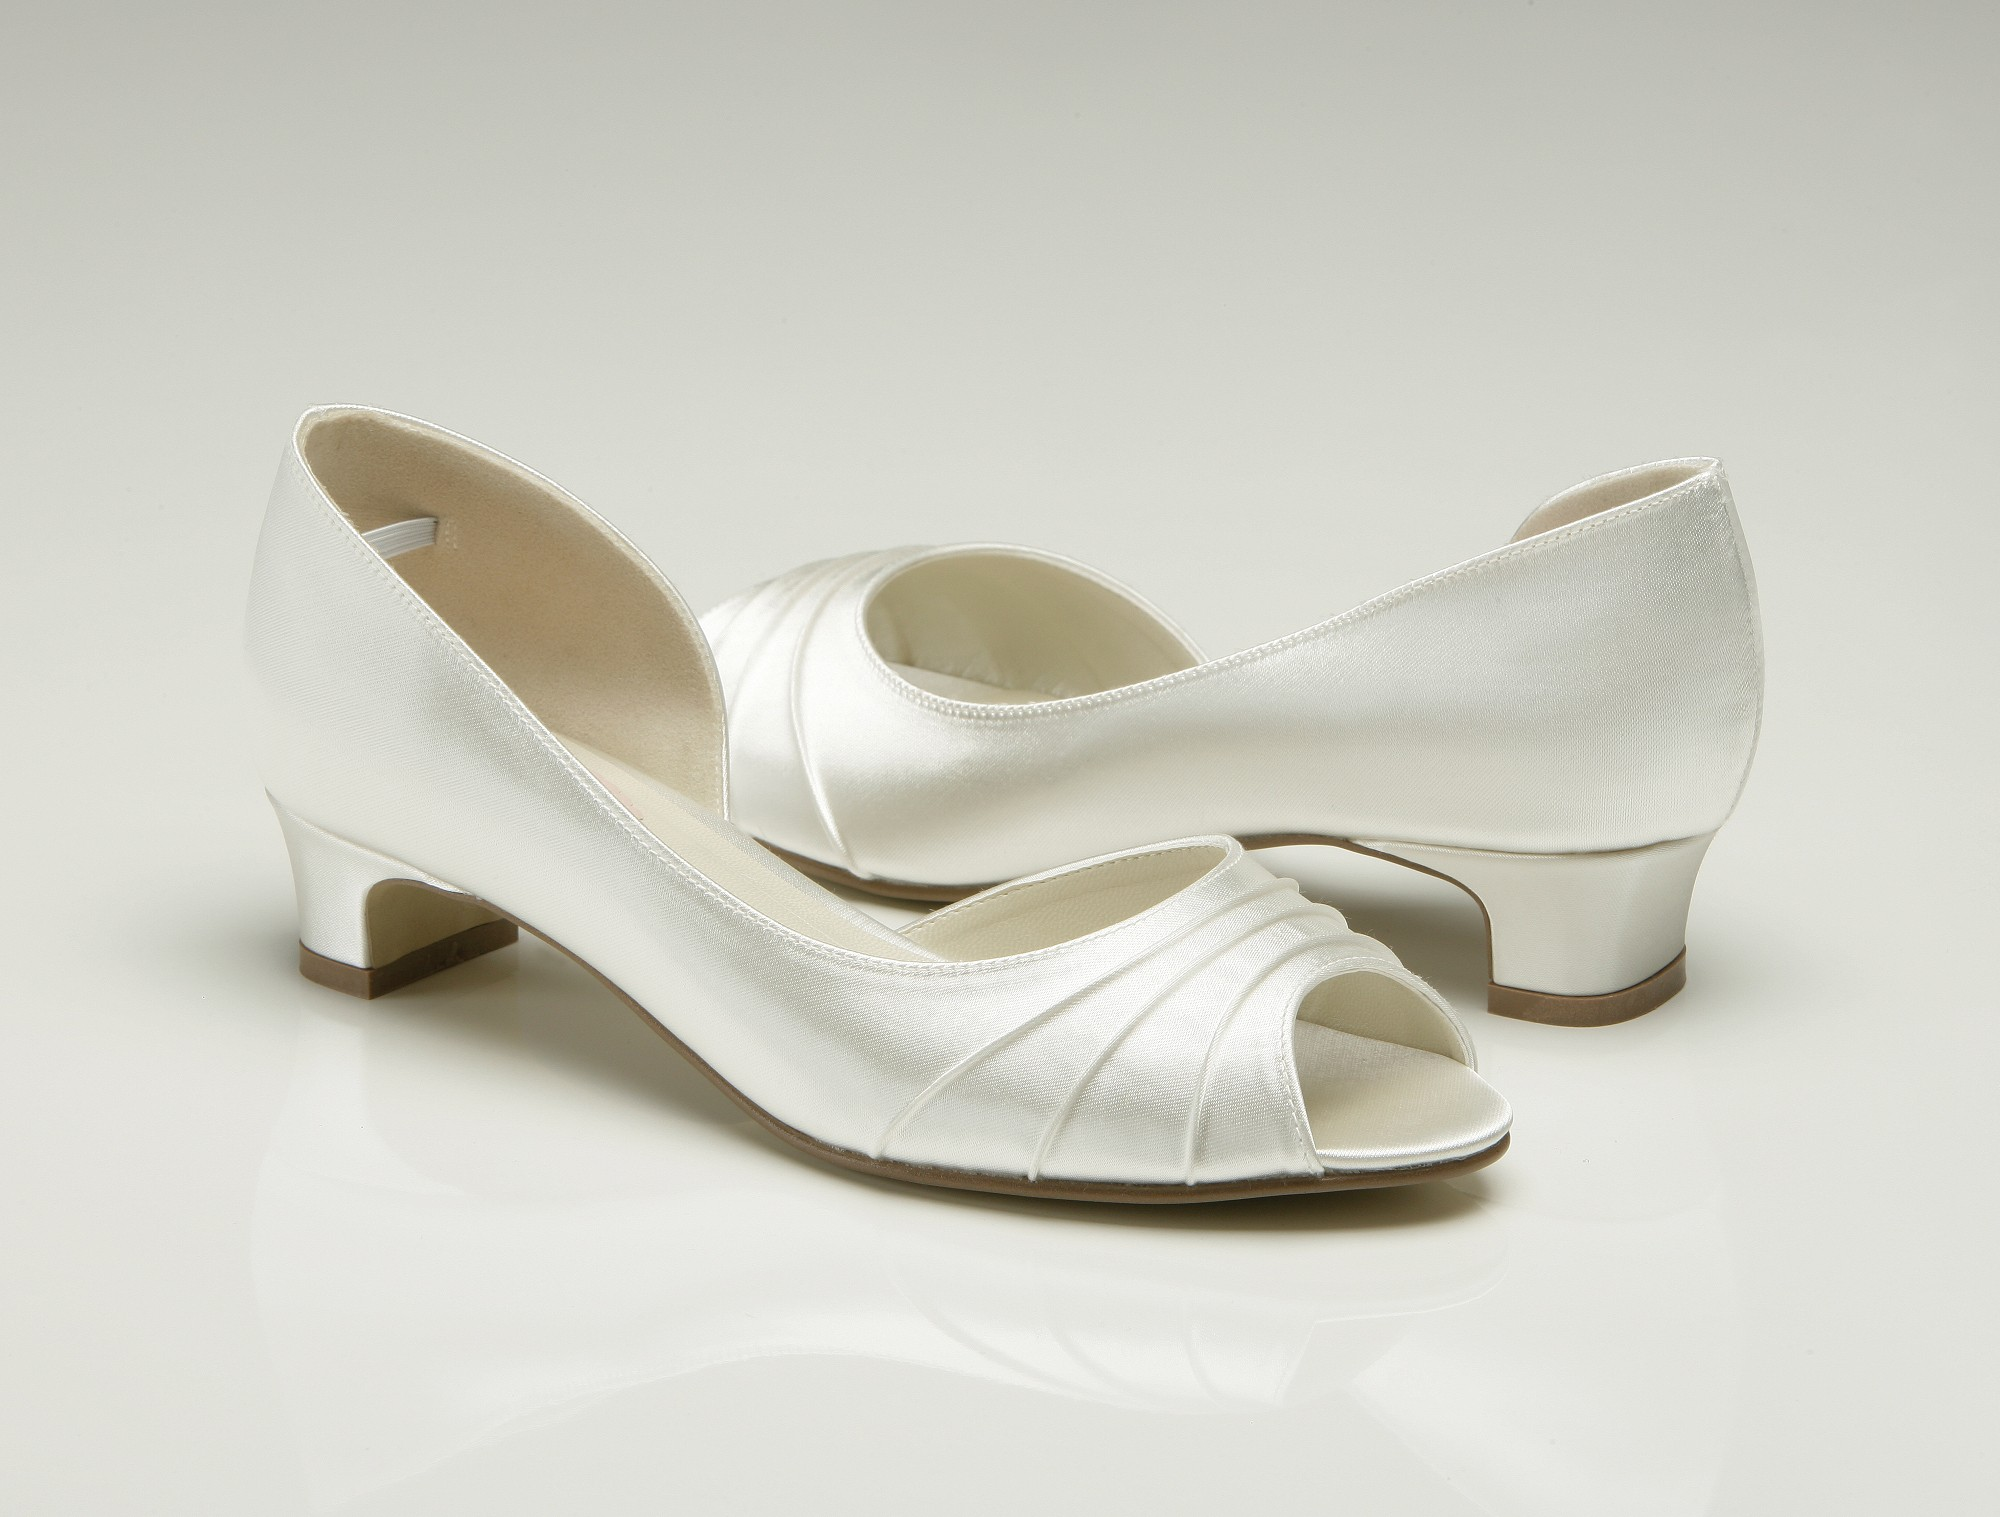 white wedding shoes uk low heel wedding shoes wedges Low Heel Bridal Shoes Uk Wedges Flats Designer Photos Pics Images Wallpapers